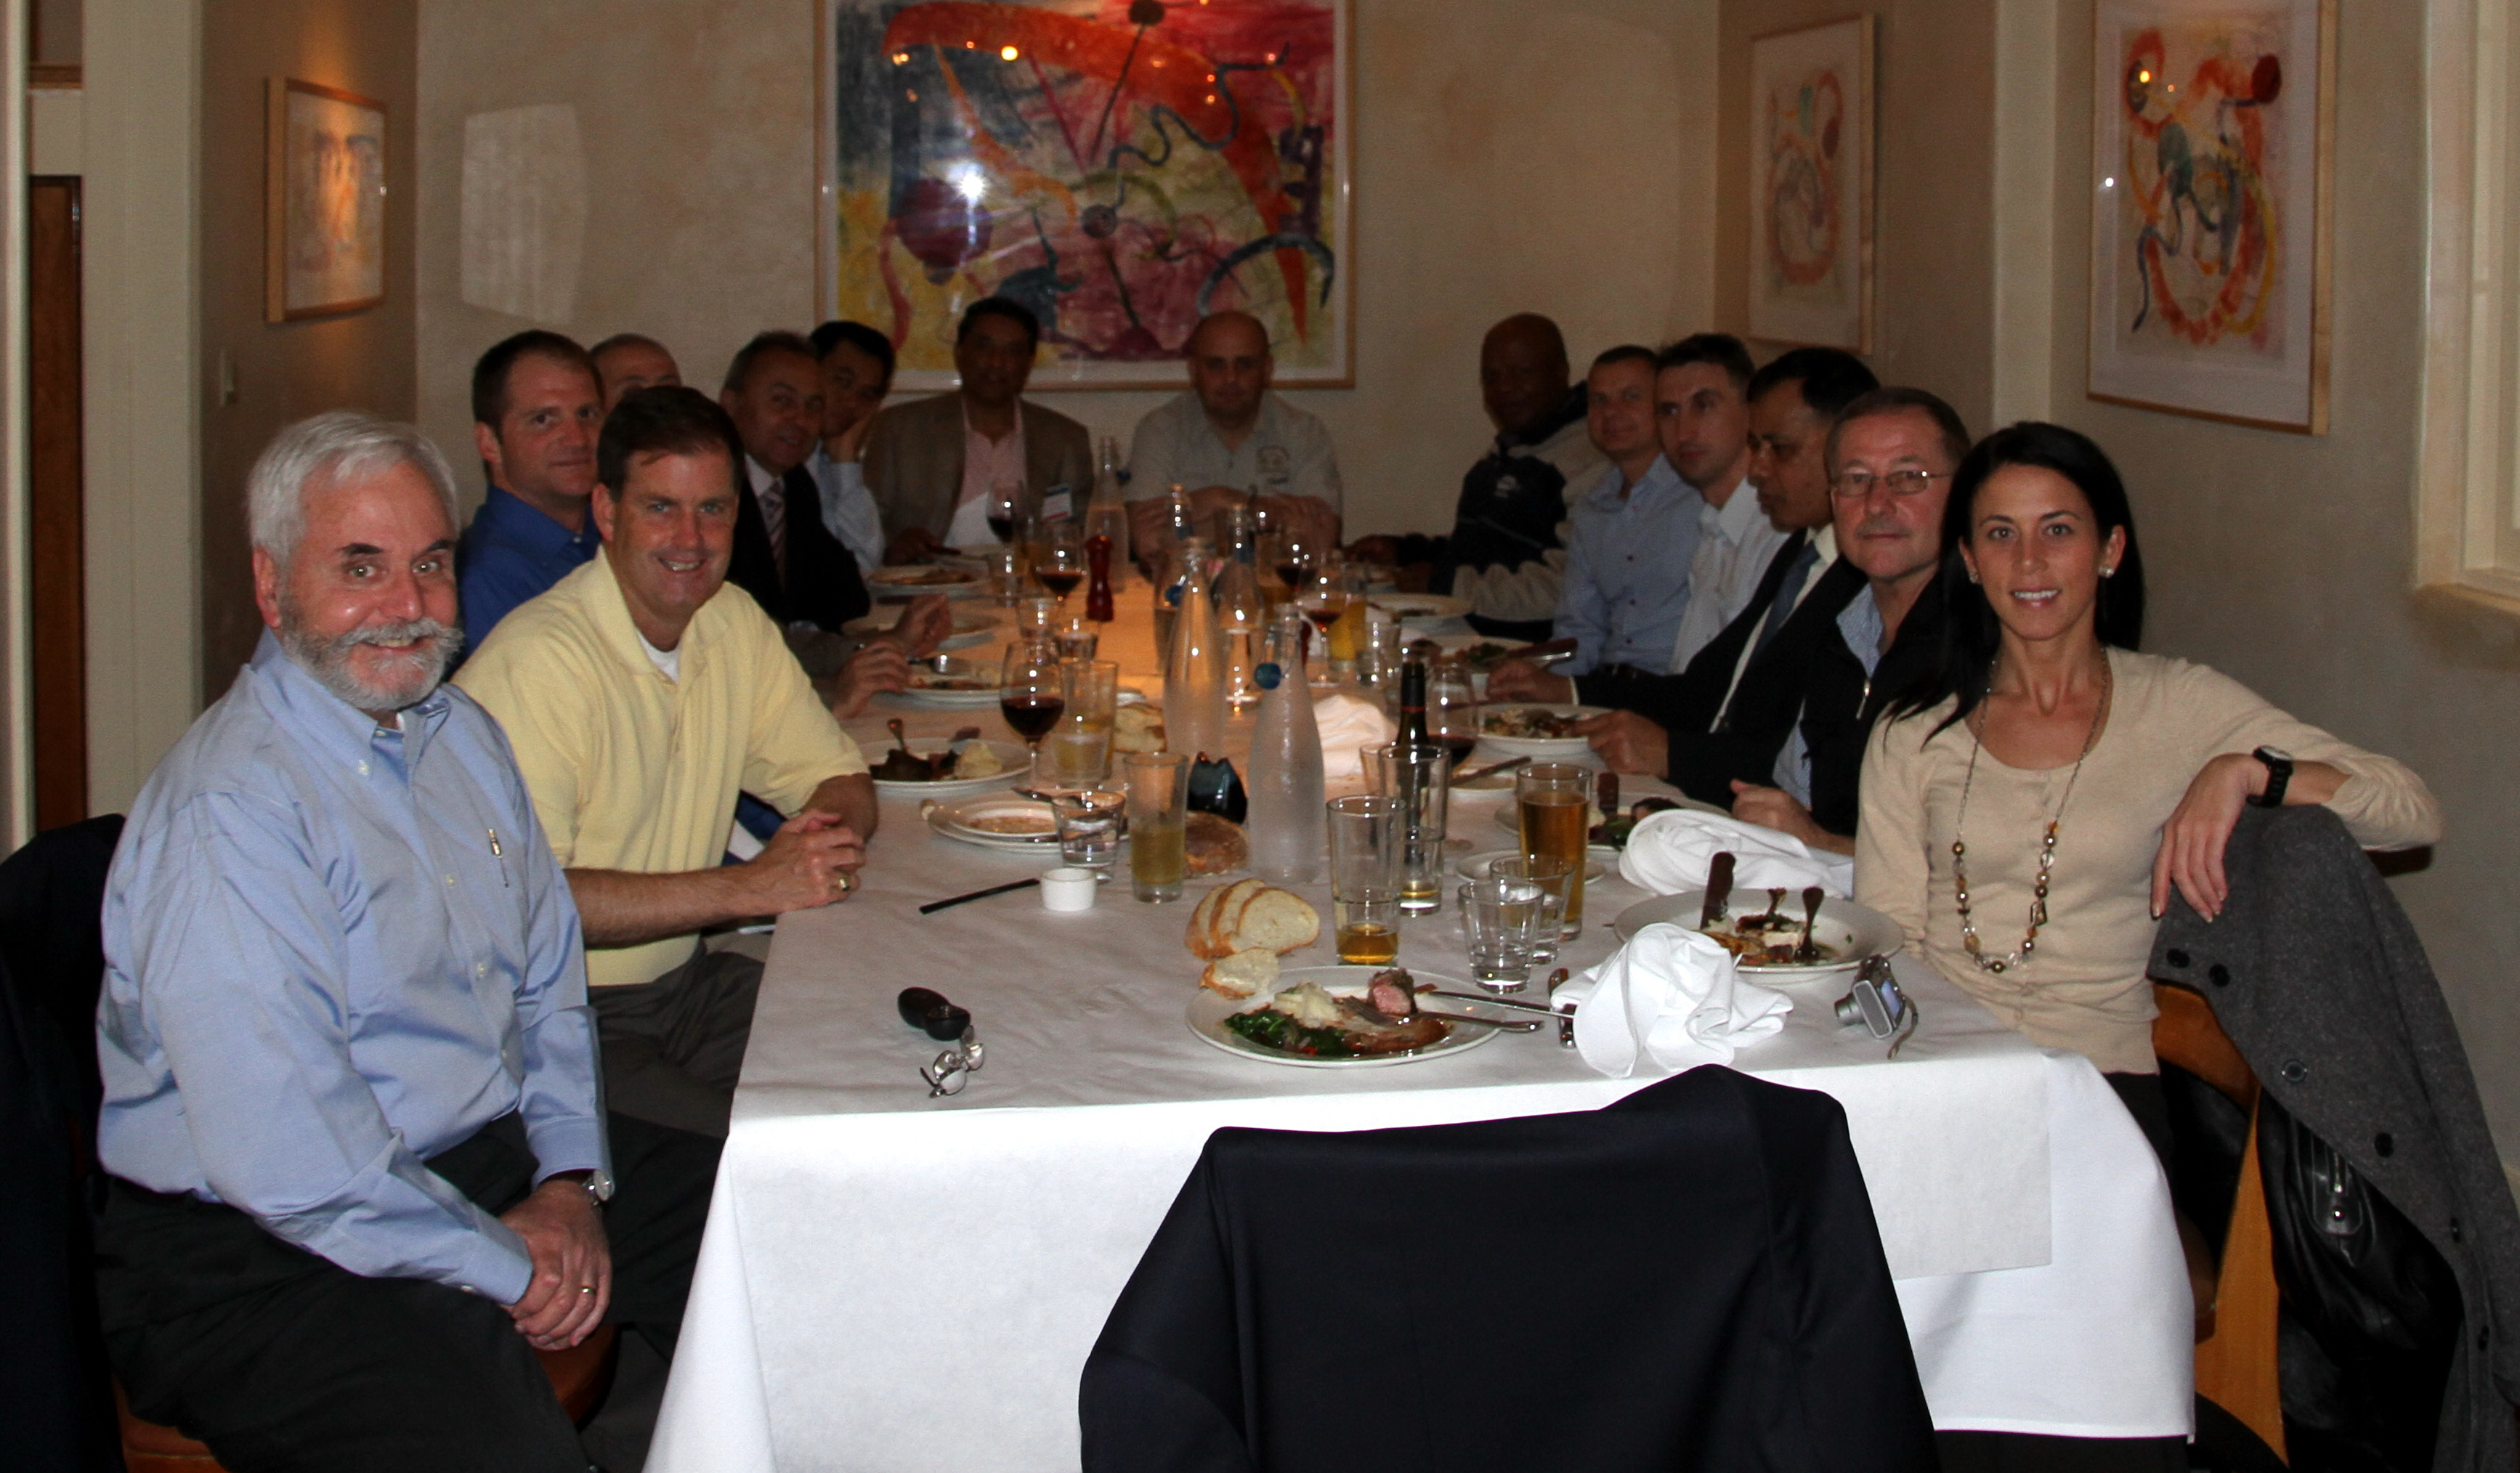 Participants and instructors meet for a meal, 2011